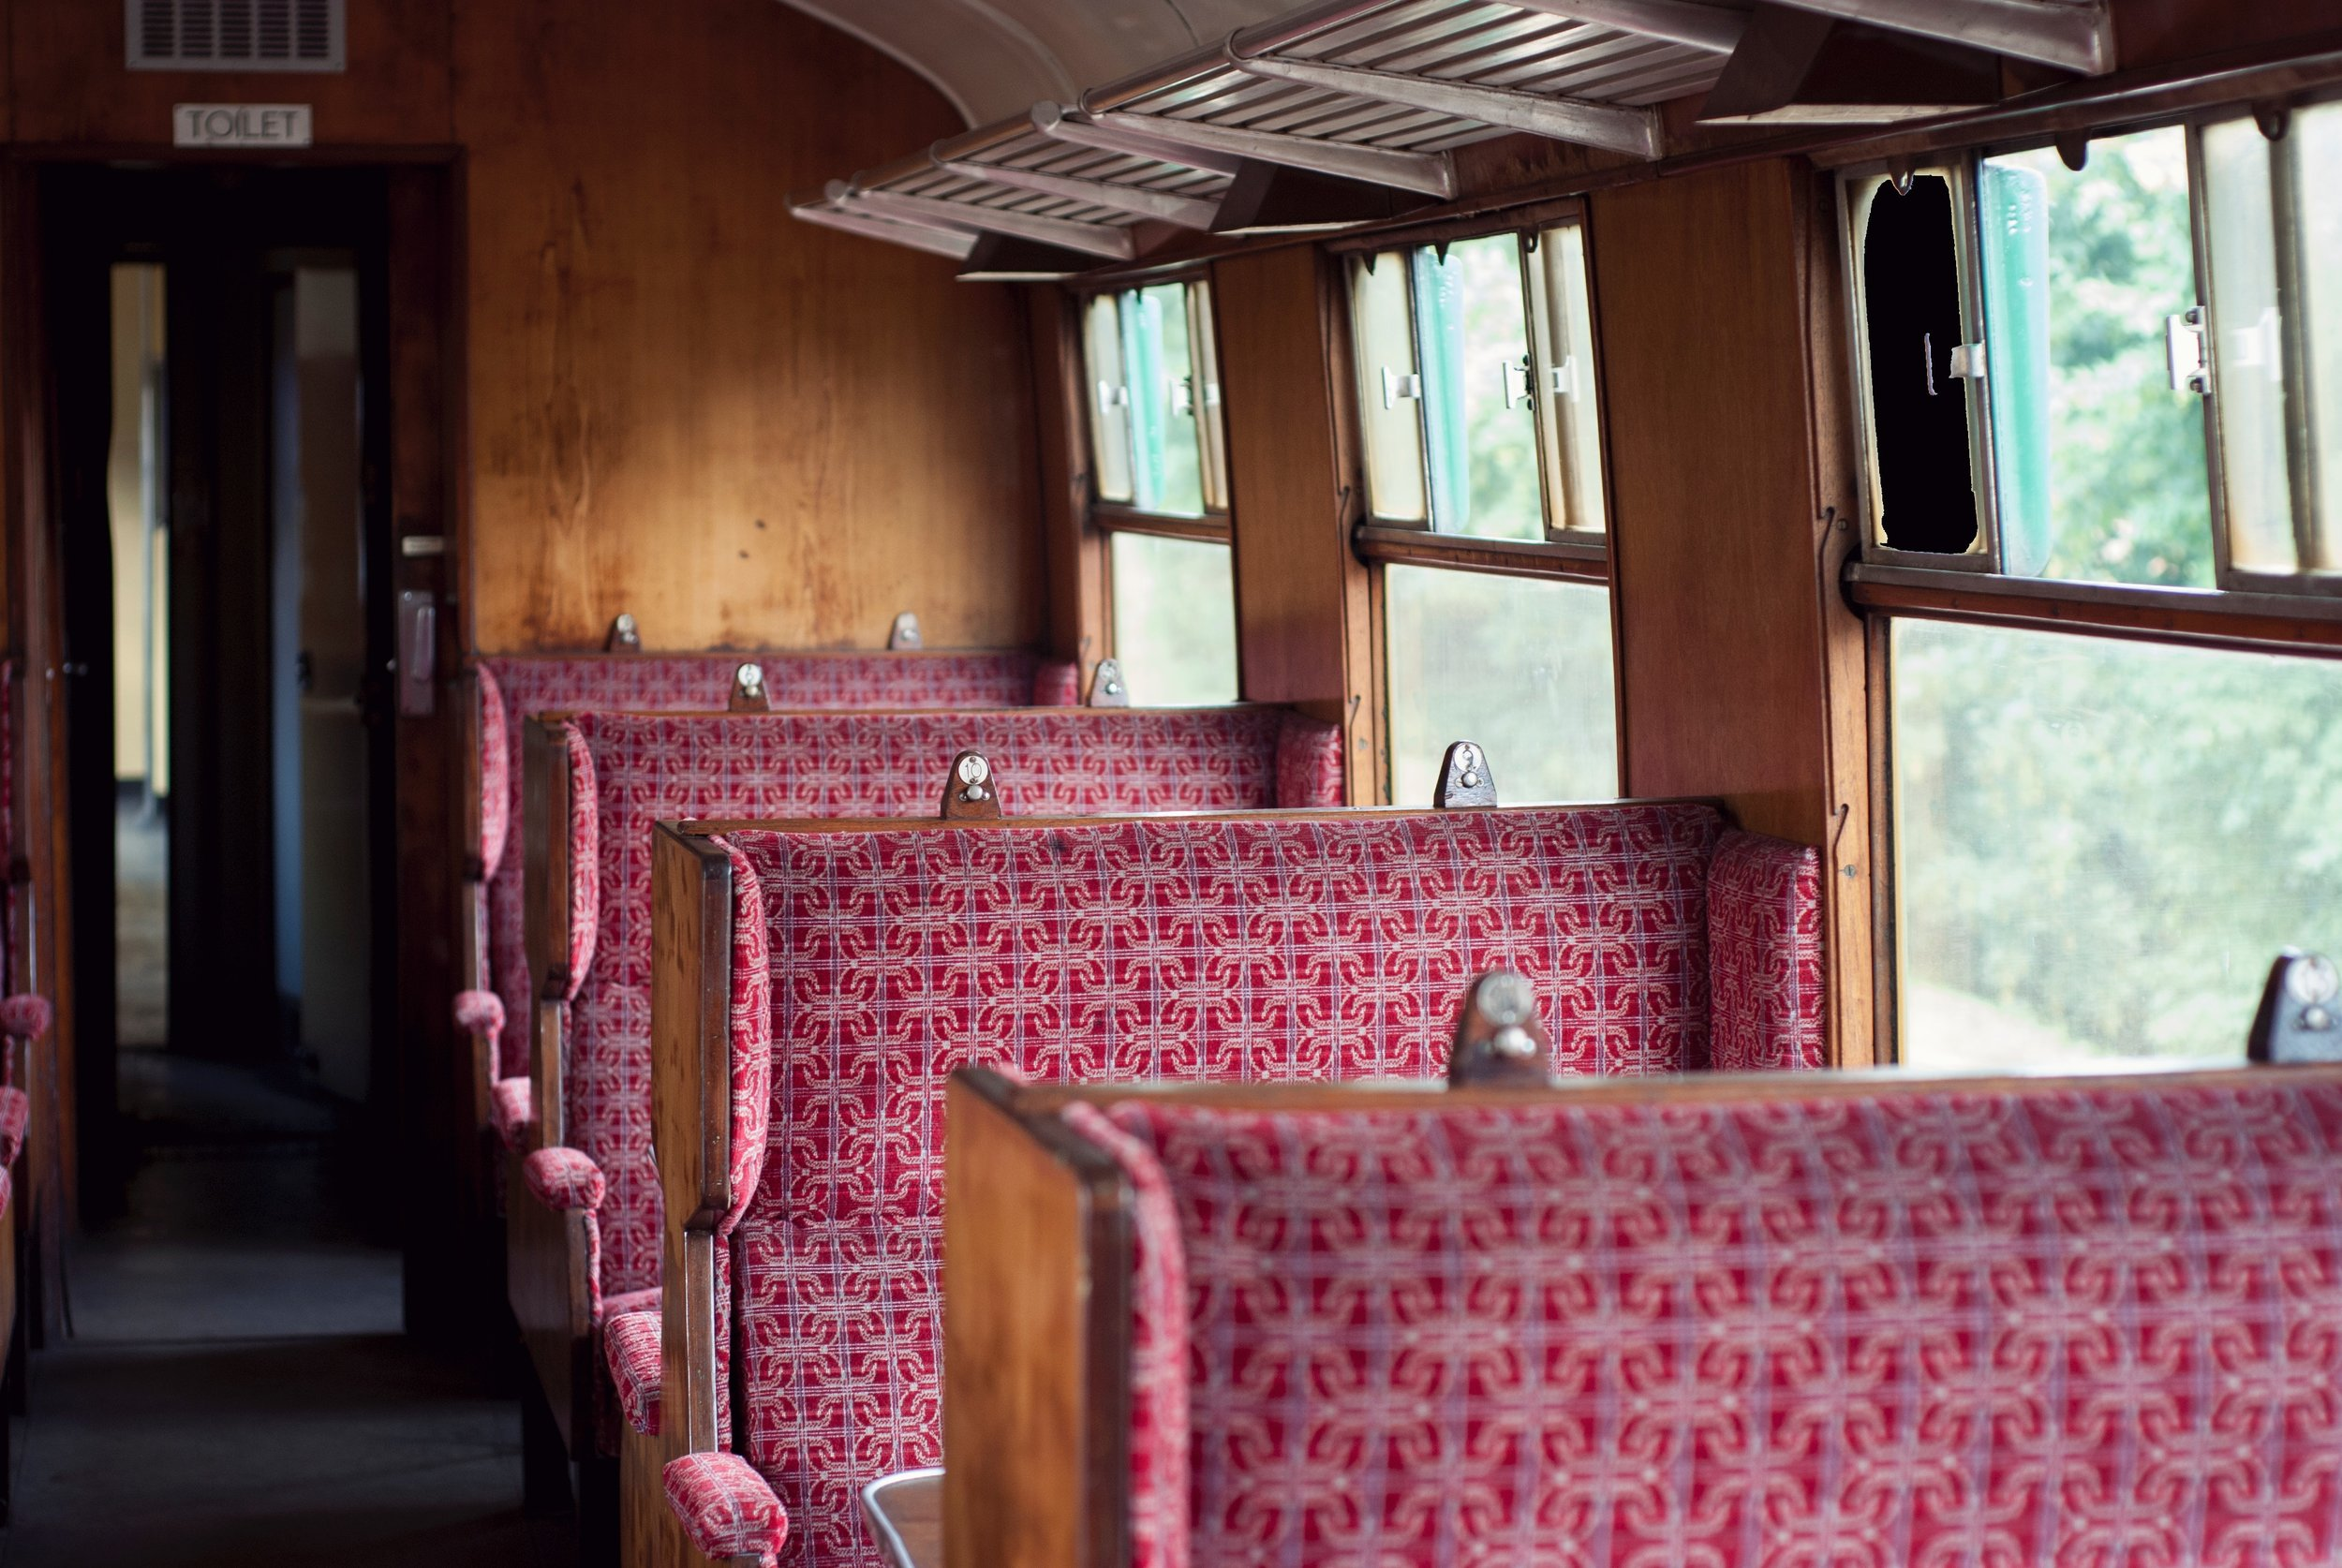 Norfolk steam train adventure, inside a carriage, rainy day